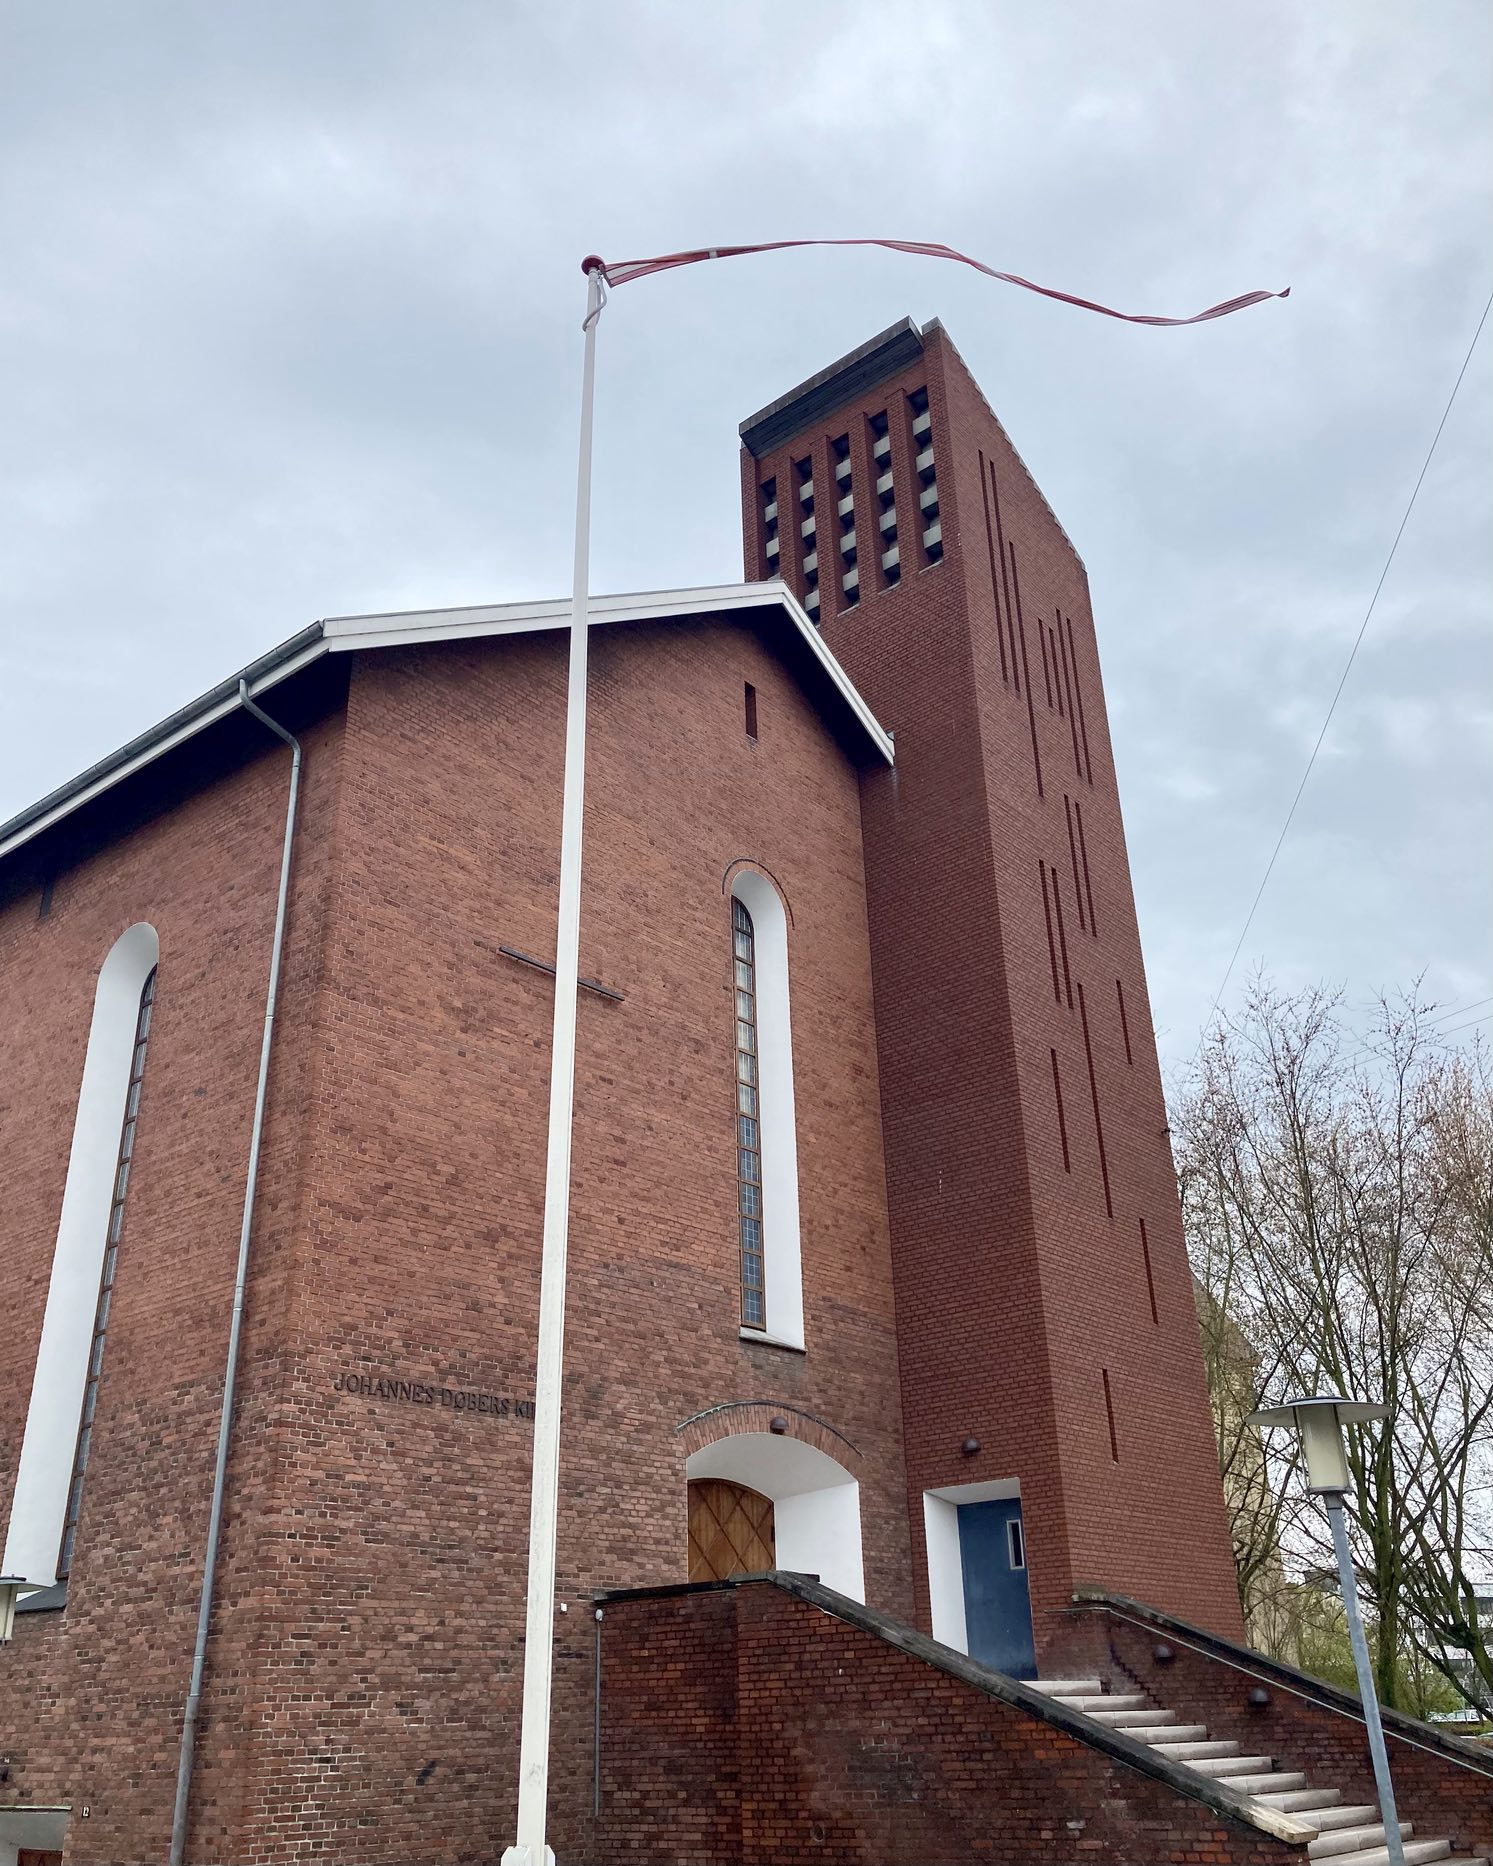 This was one of the photographs that I 'tried' with less today, but the one that spoke to me the most. The flag in the wind flowing over the modernistic church tower, grey skies behind it all. With freshly painted white windows and flagpole to give it all some extra definition. And a blue door.